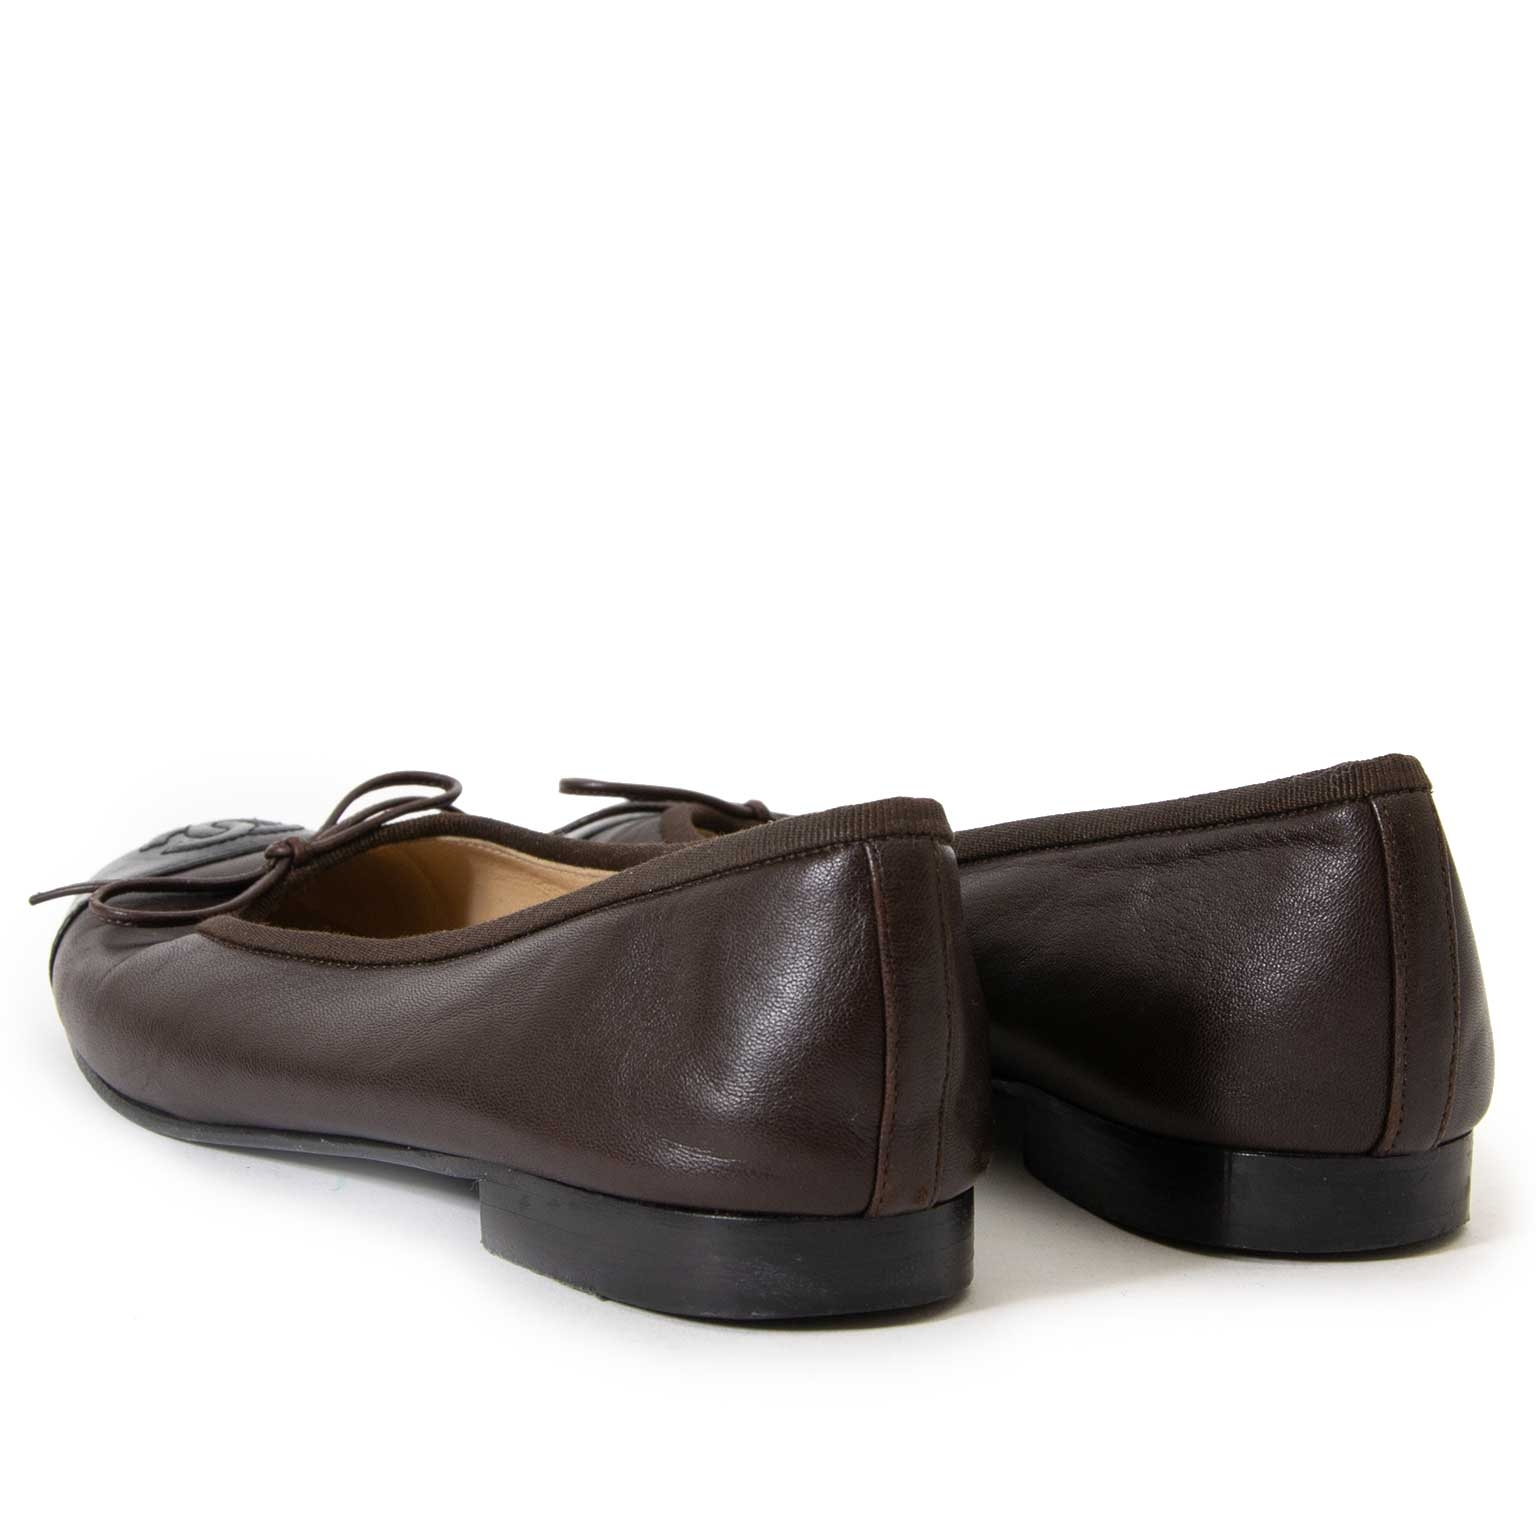 chanel black and brown cap-toe ballerinas now for sale at labellov vintage fashion webshop belgium